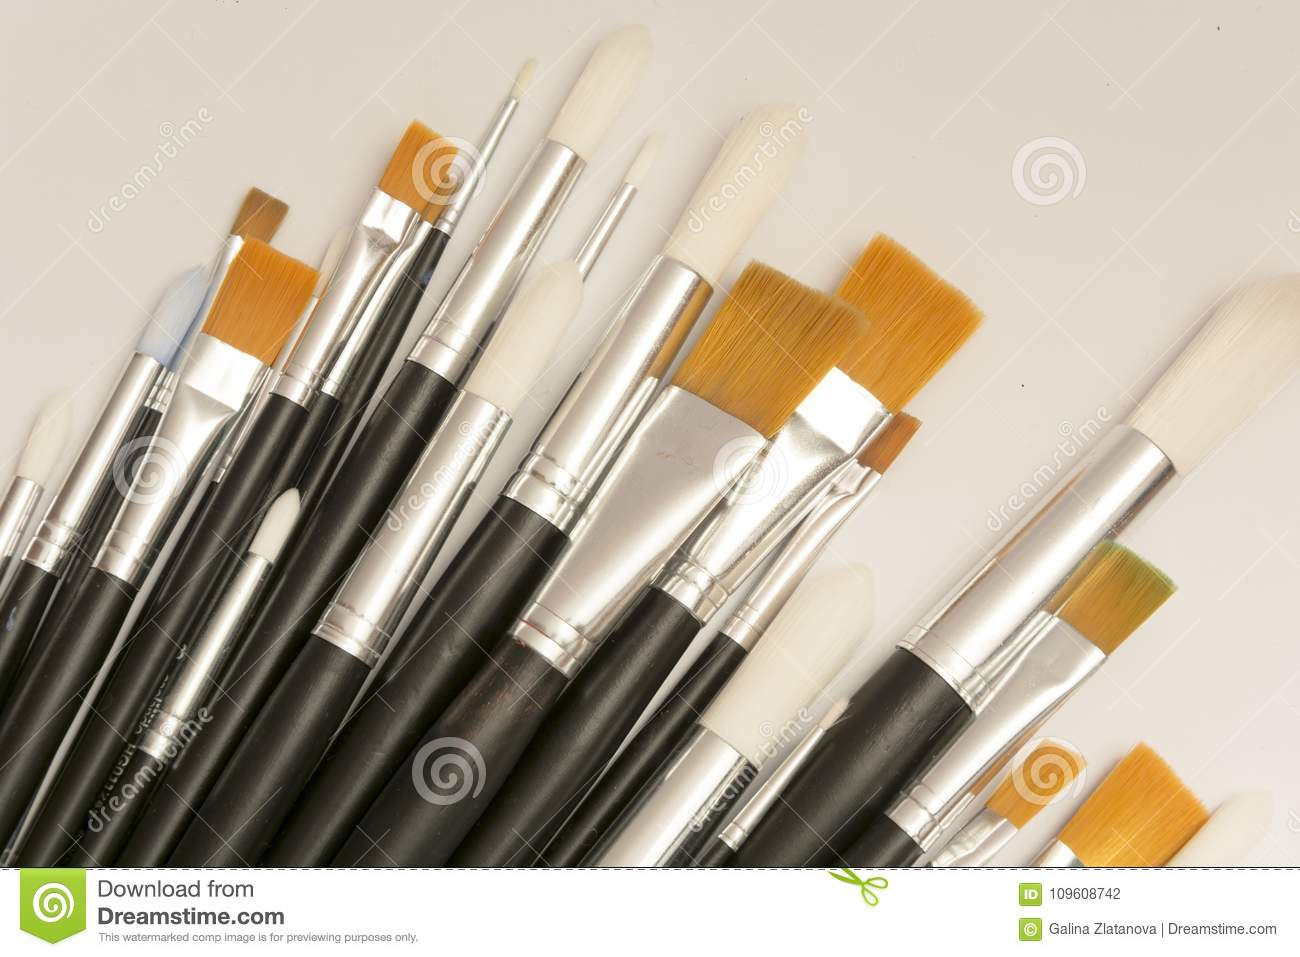 Brushes for drawing different sizes